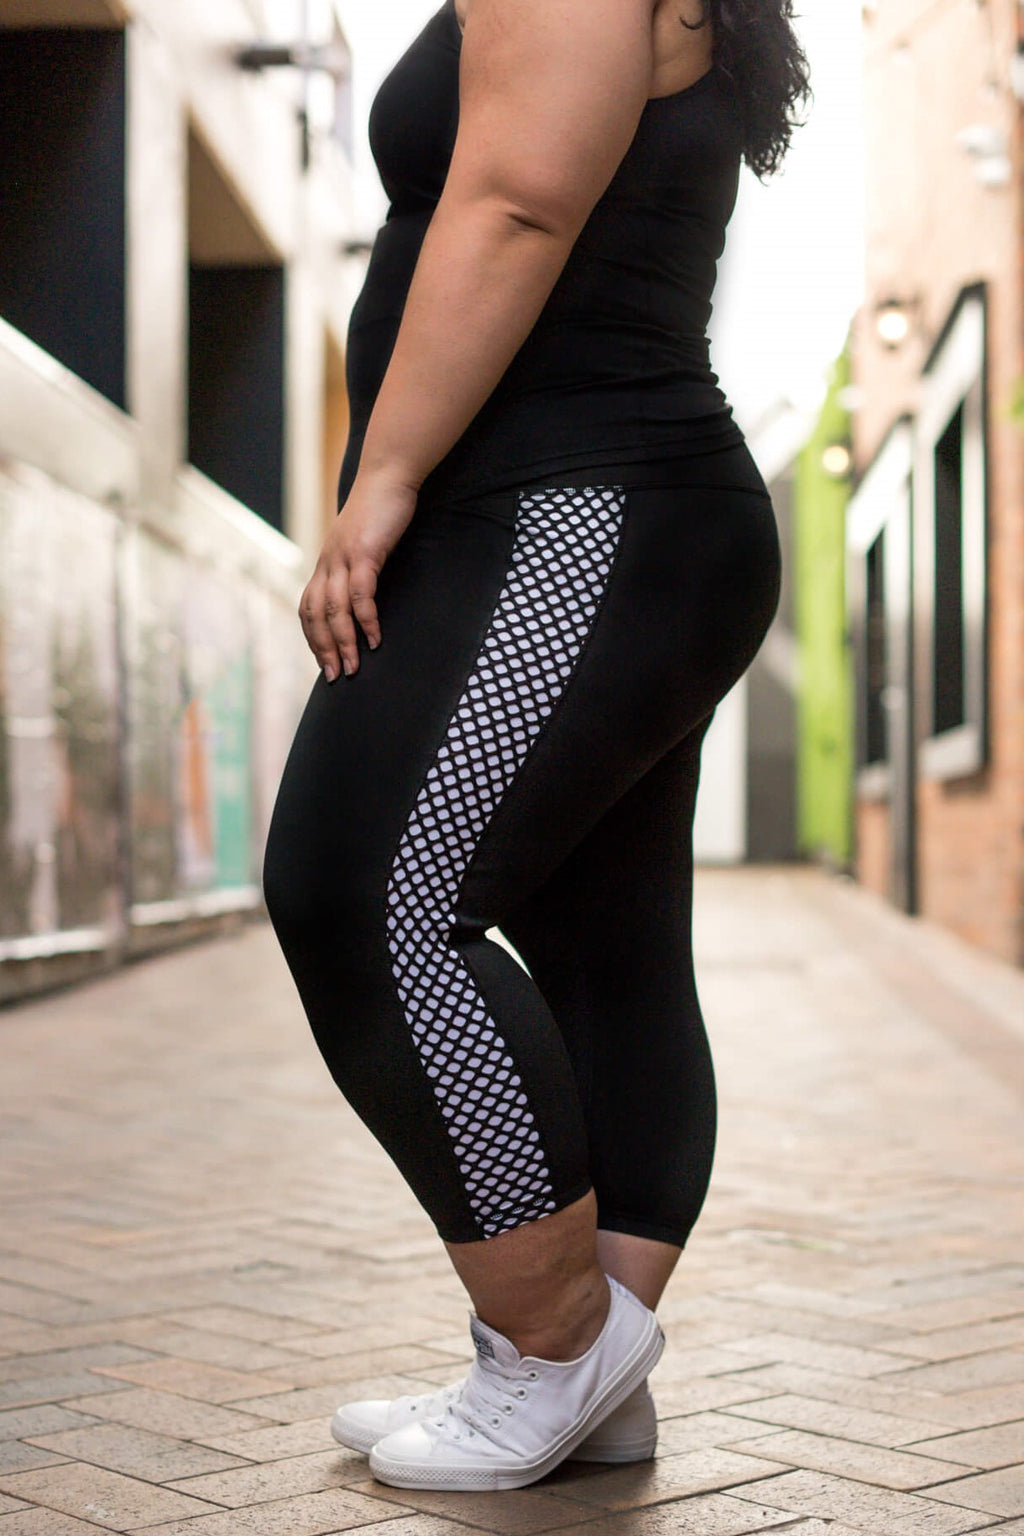 Model is shown from the chest down and wearing black leggings which have a white mesh pattern down the length of each side. The leggings are 7/8 in length, and she also wears a tight black top.